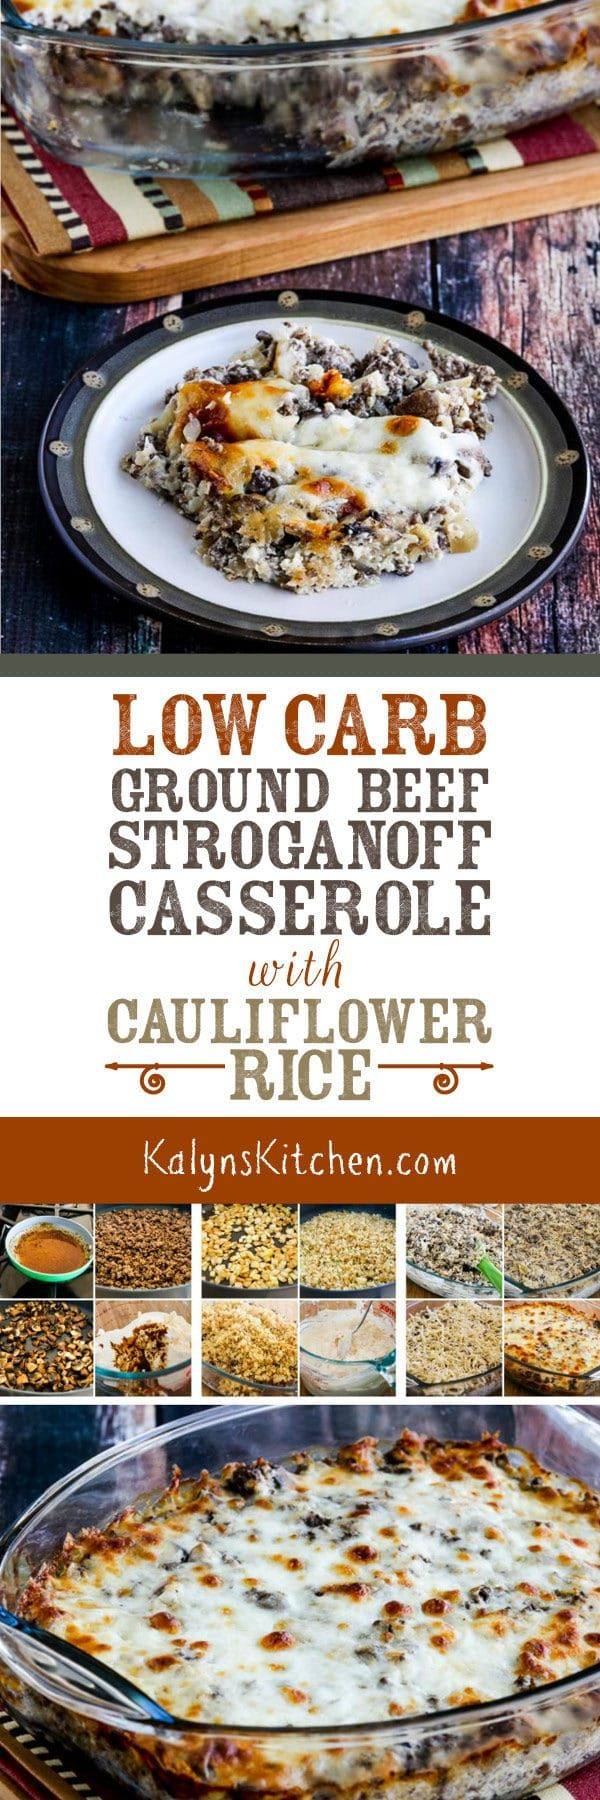 Low-Carb Ground Beef Stroganoff Casserole with Cauliflower Rice is a delicious low-carb and Keto casserole the whole family will enjoy. And there's nothing like a good low-carb comfort food casserole when you're trying to get back on track in January! [found on KalynsKitchen.com]